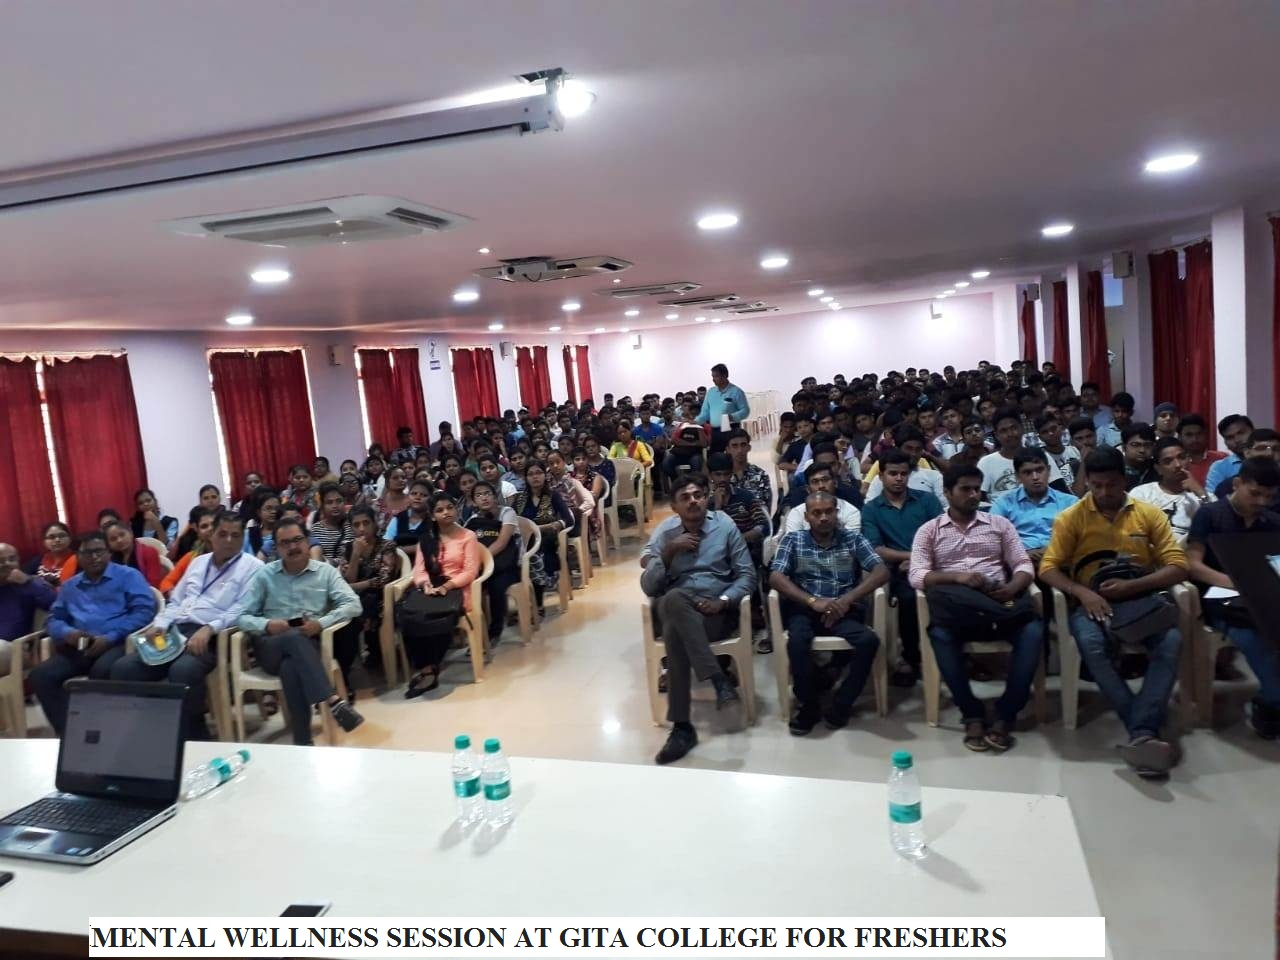 MENTAL WELLNESS SESSION AT GITA COLLEGE FOR FRESHERS